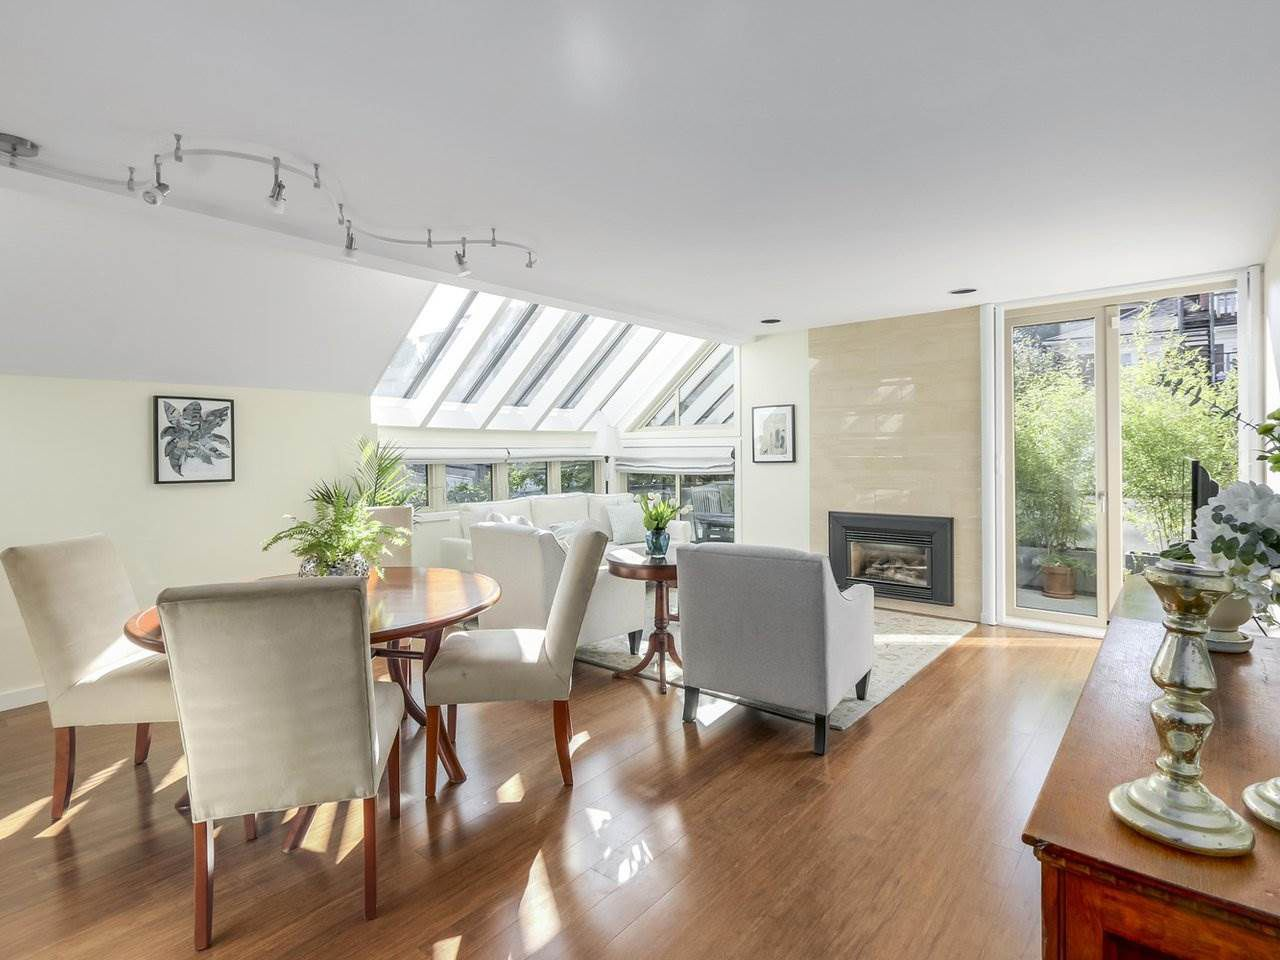 Main Photo: 1735 LARCH Street in Vancouver: Kitsilano Townhouse for sale (Vancouver West)  : MLS®# R2330444